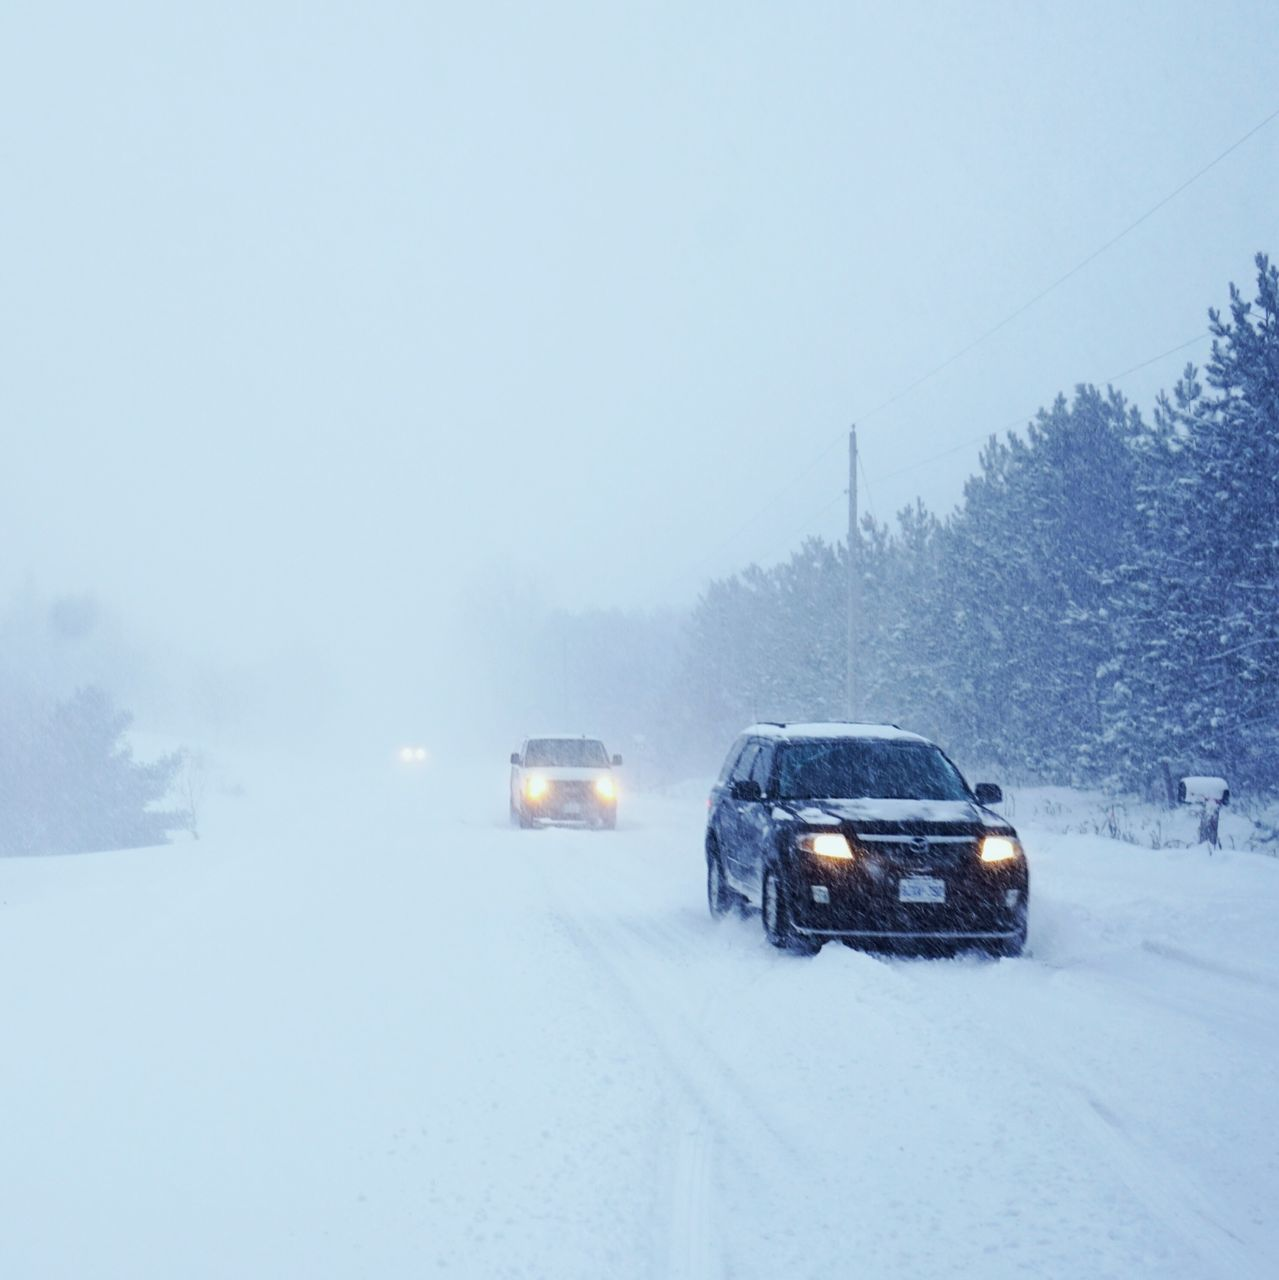 cold temperature, winter, snow, weather, car, transportation, mode of transport, land vehicle, road, snowing, nature, frozen, outdoors, no people, day, beauty in nature, tree, sky